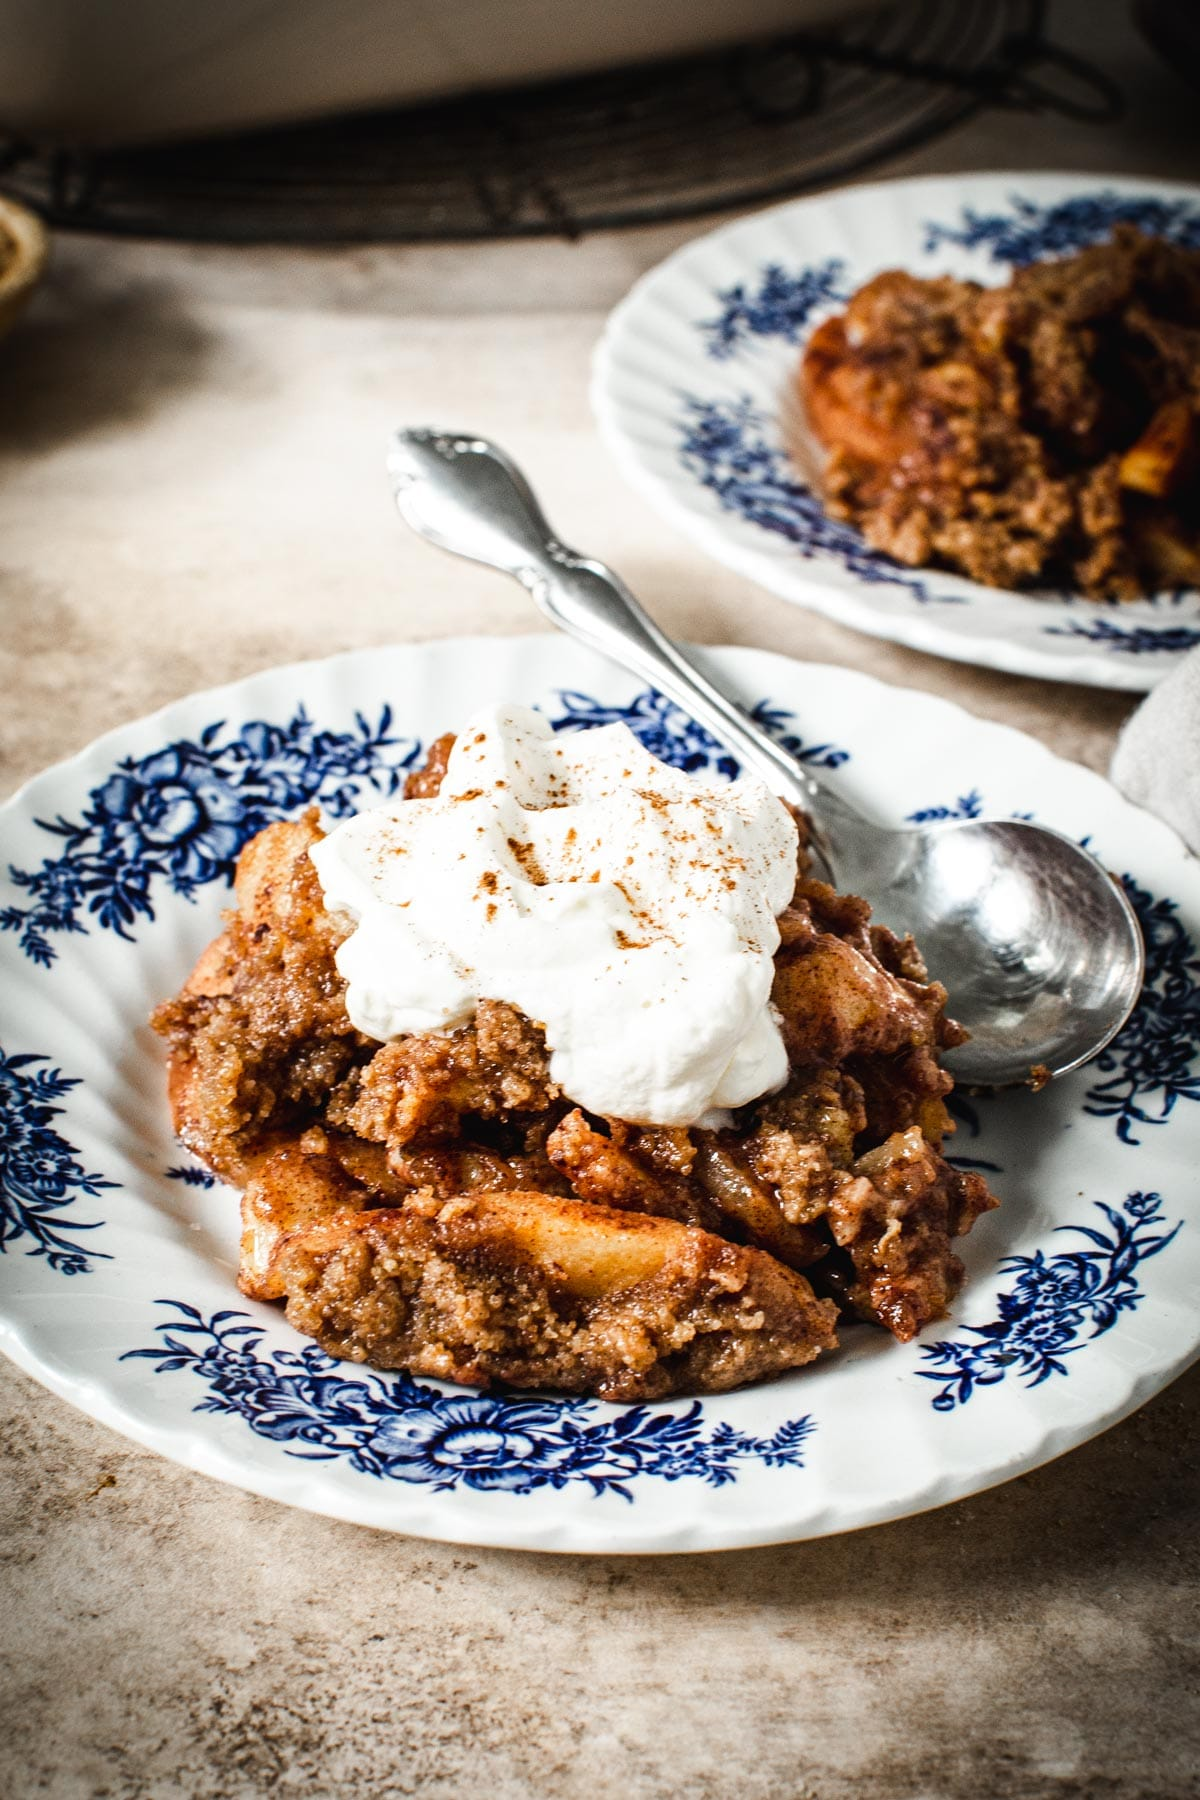 Baked apple crumble without oats topped with whipped cream.